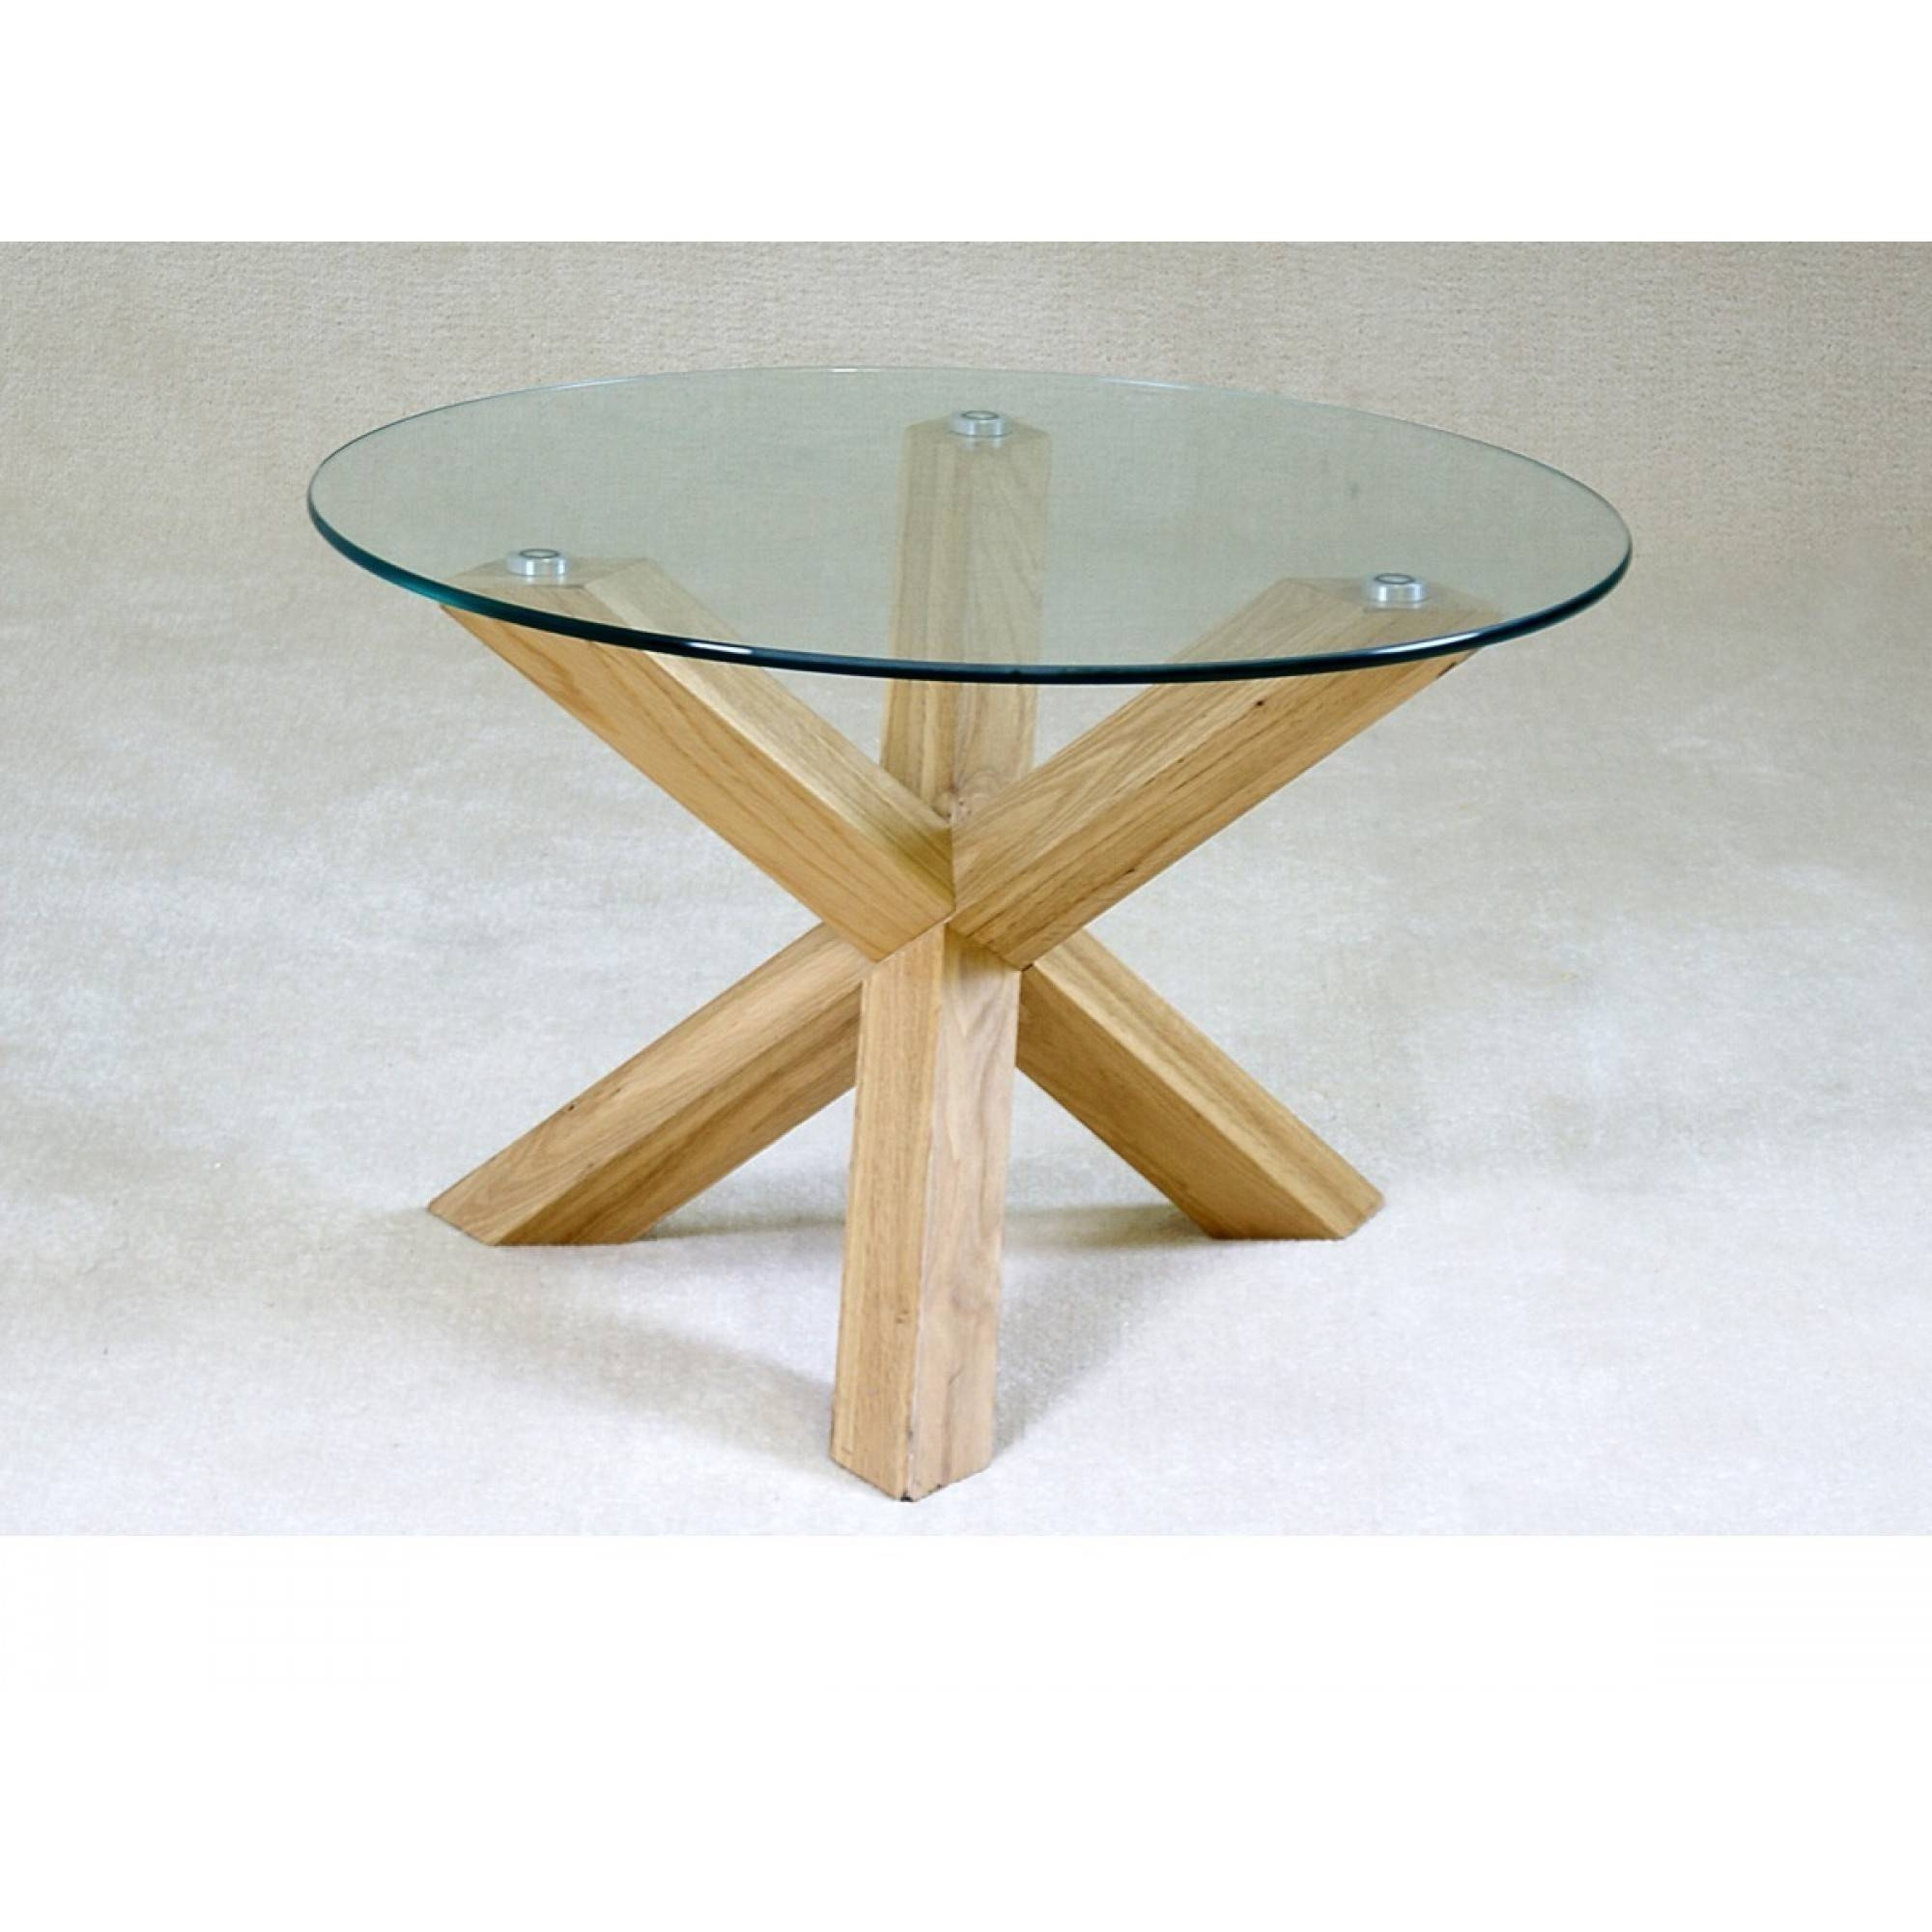 Glass Top Oak Coffee Table / Coffee Tables / Thippo pertaining to Glass Oak Coffee Tables (Image 9 of 15)